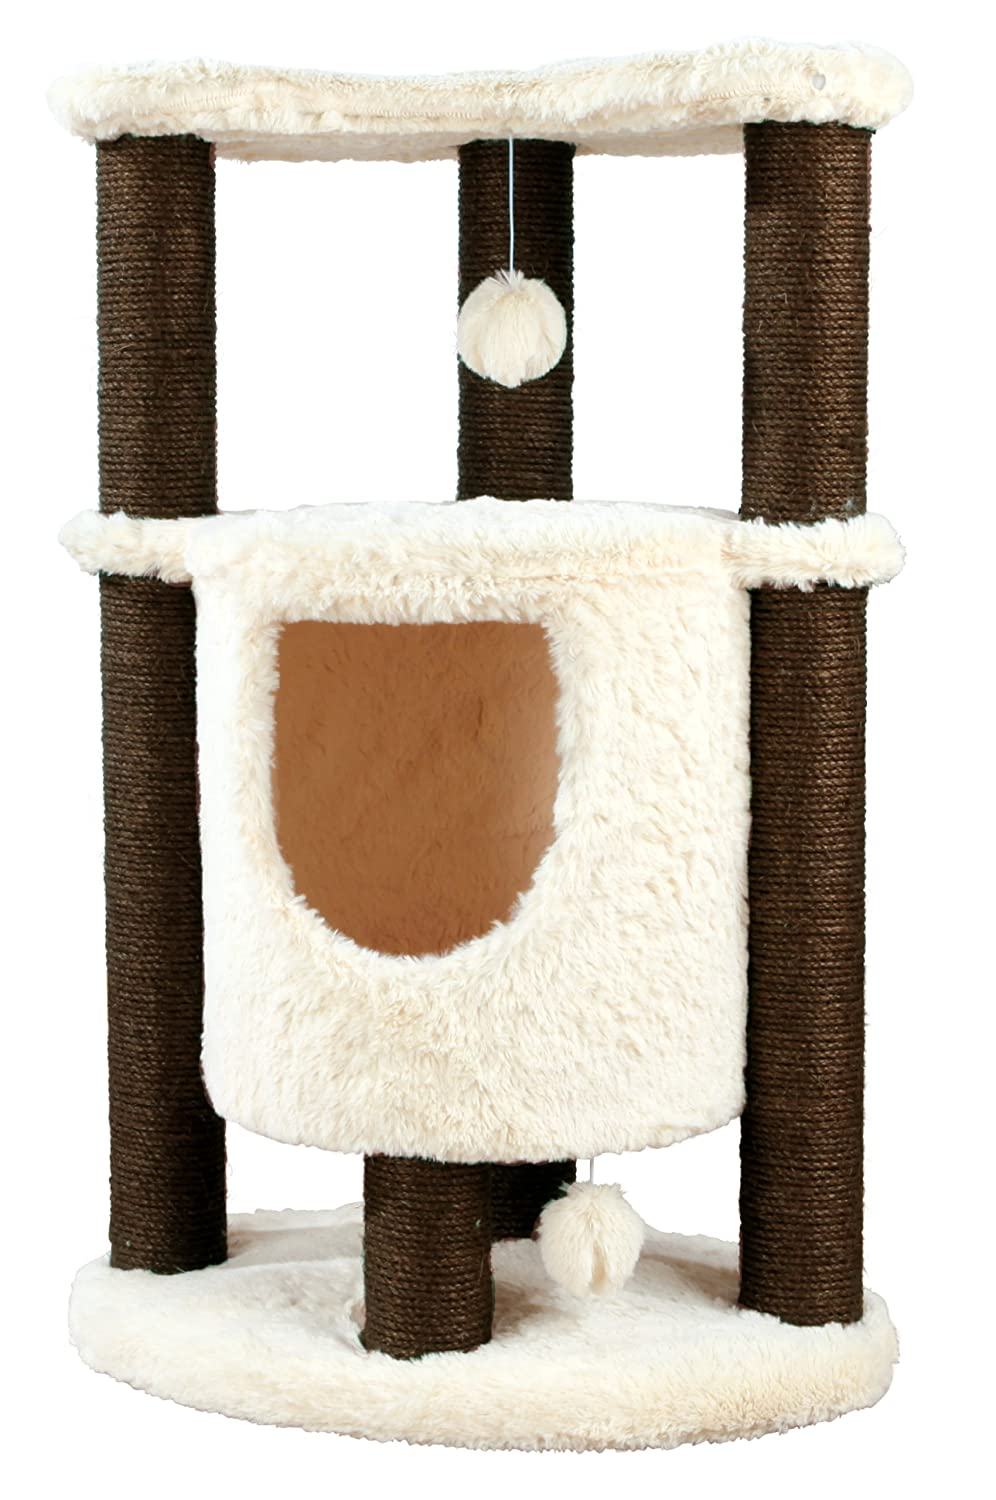 Trixie 44470 Pet Products Pepino Scratching Post, Chocolate Brown